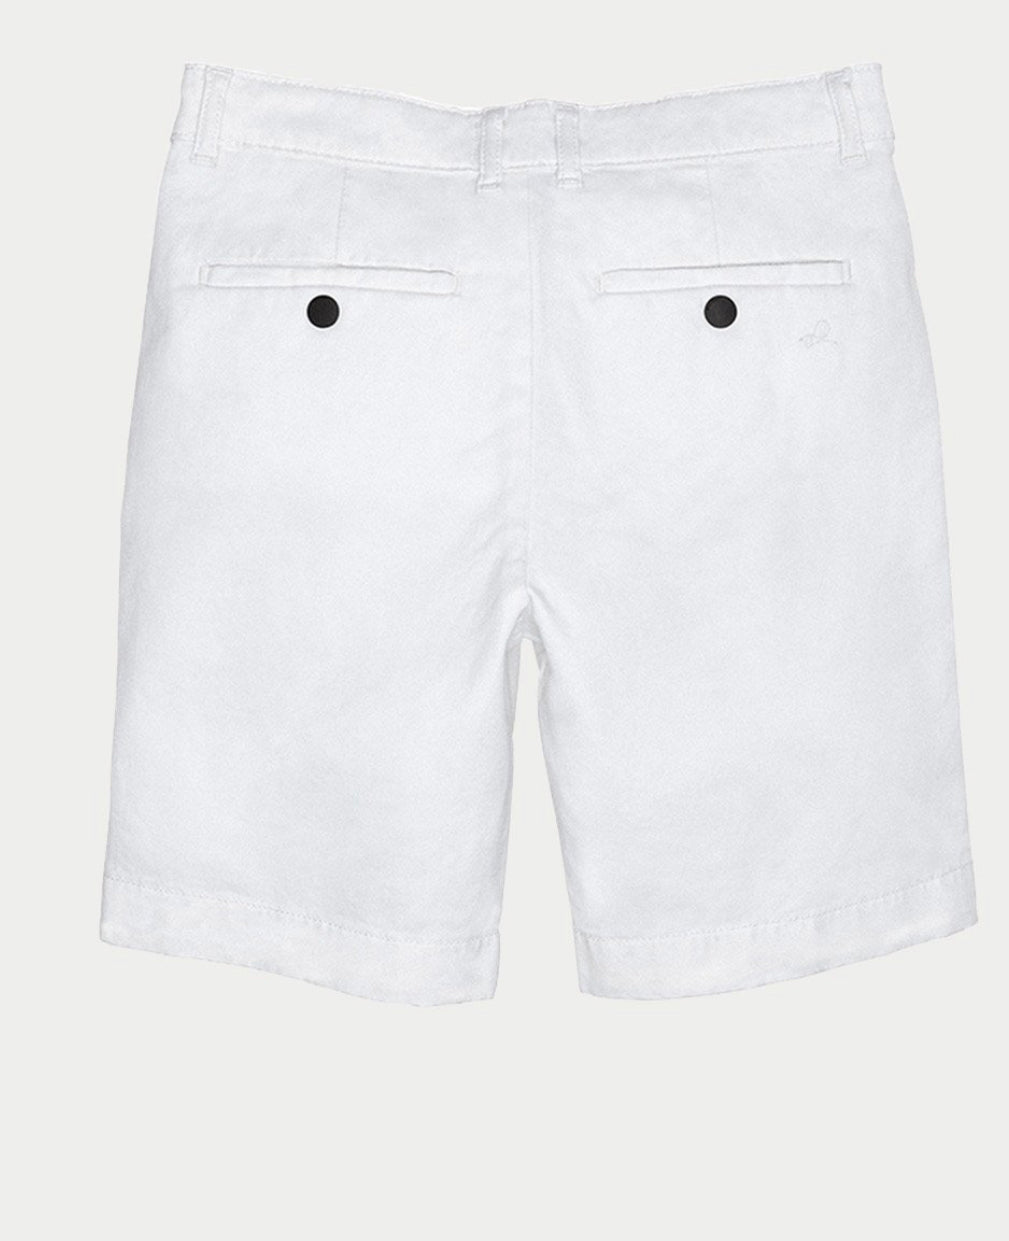 Jacob Shorts